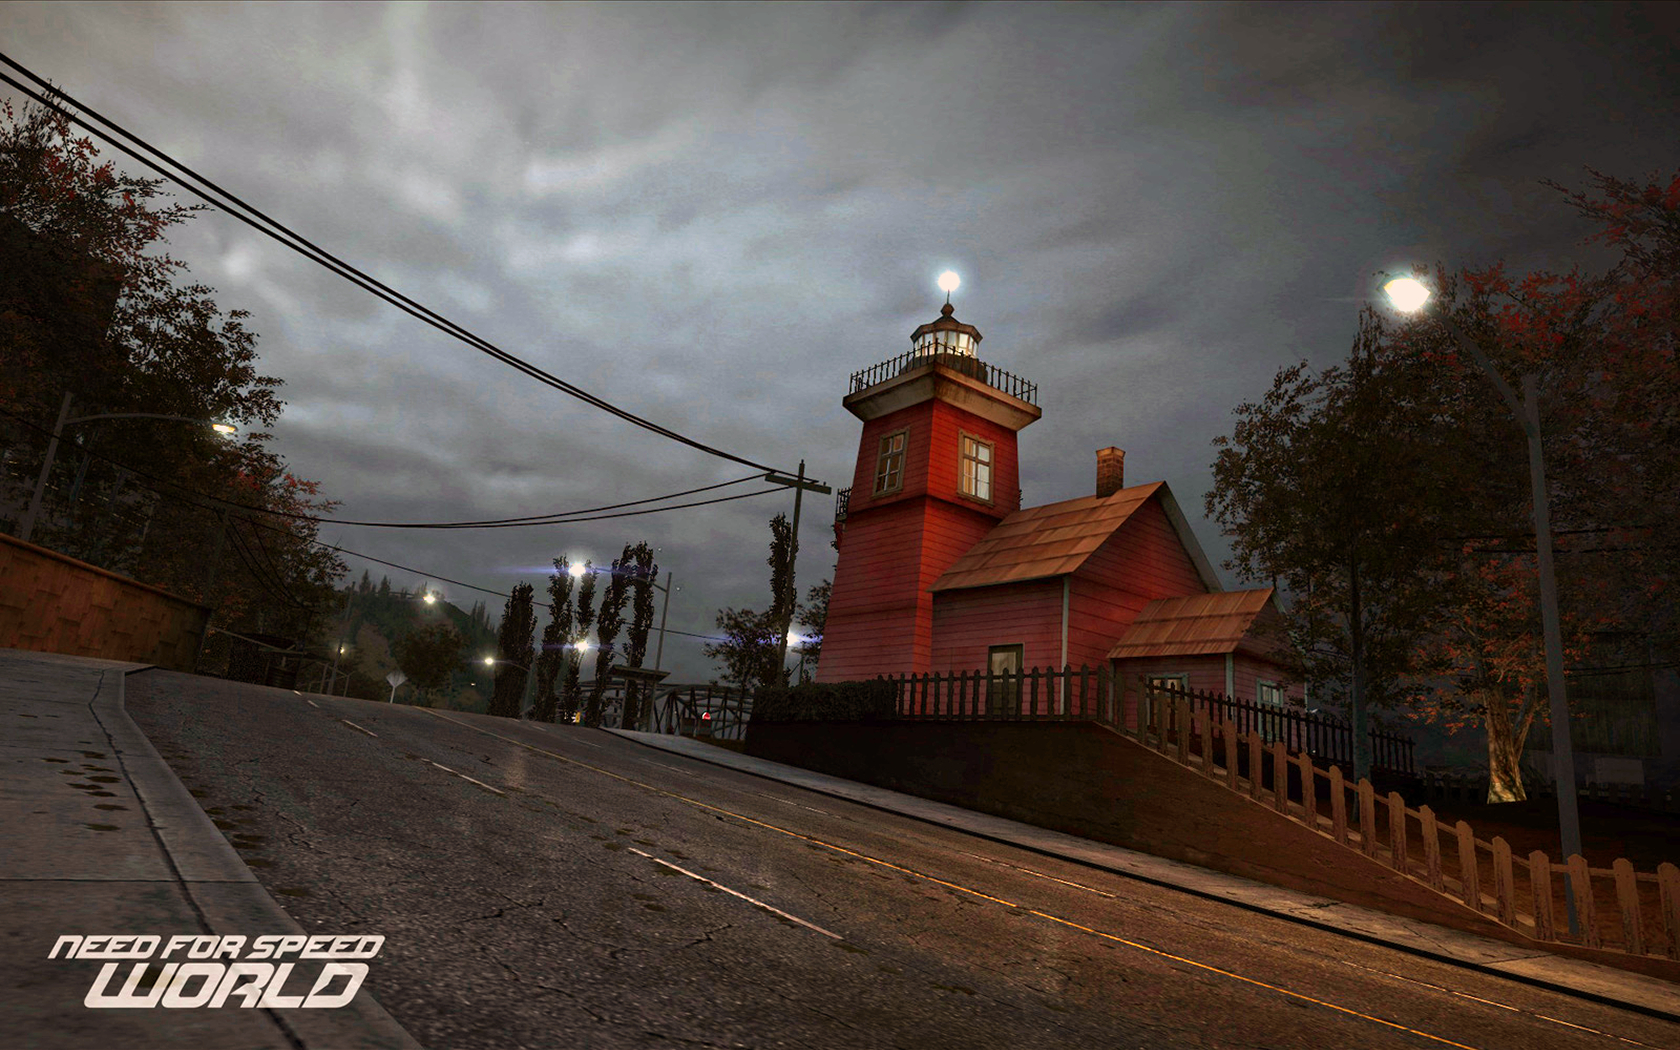 need for Speed World HD Wallpaper